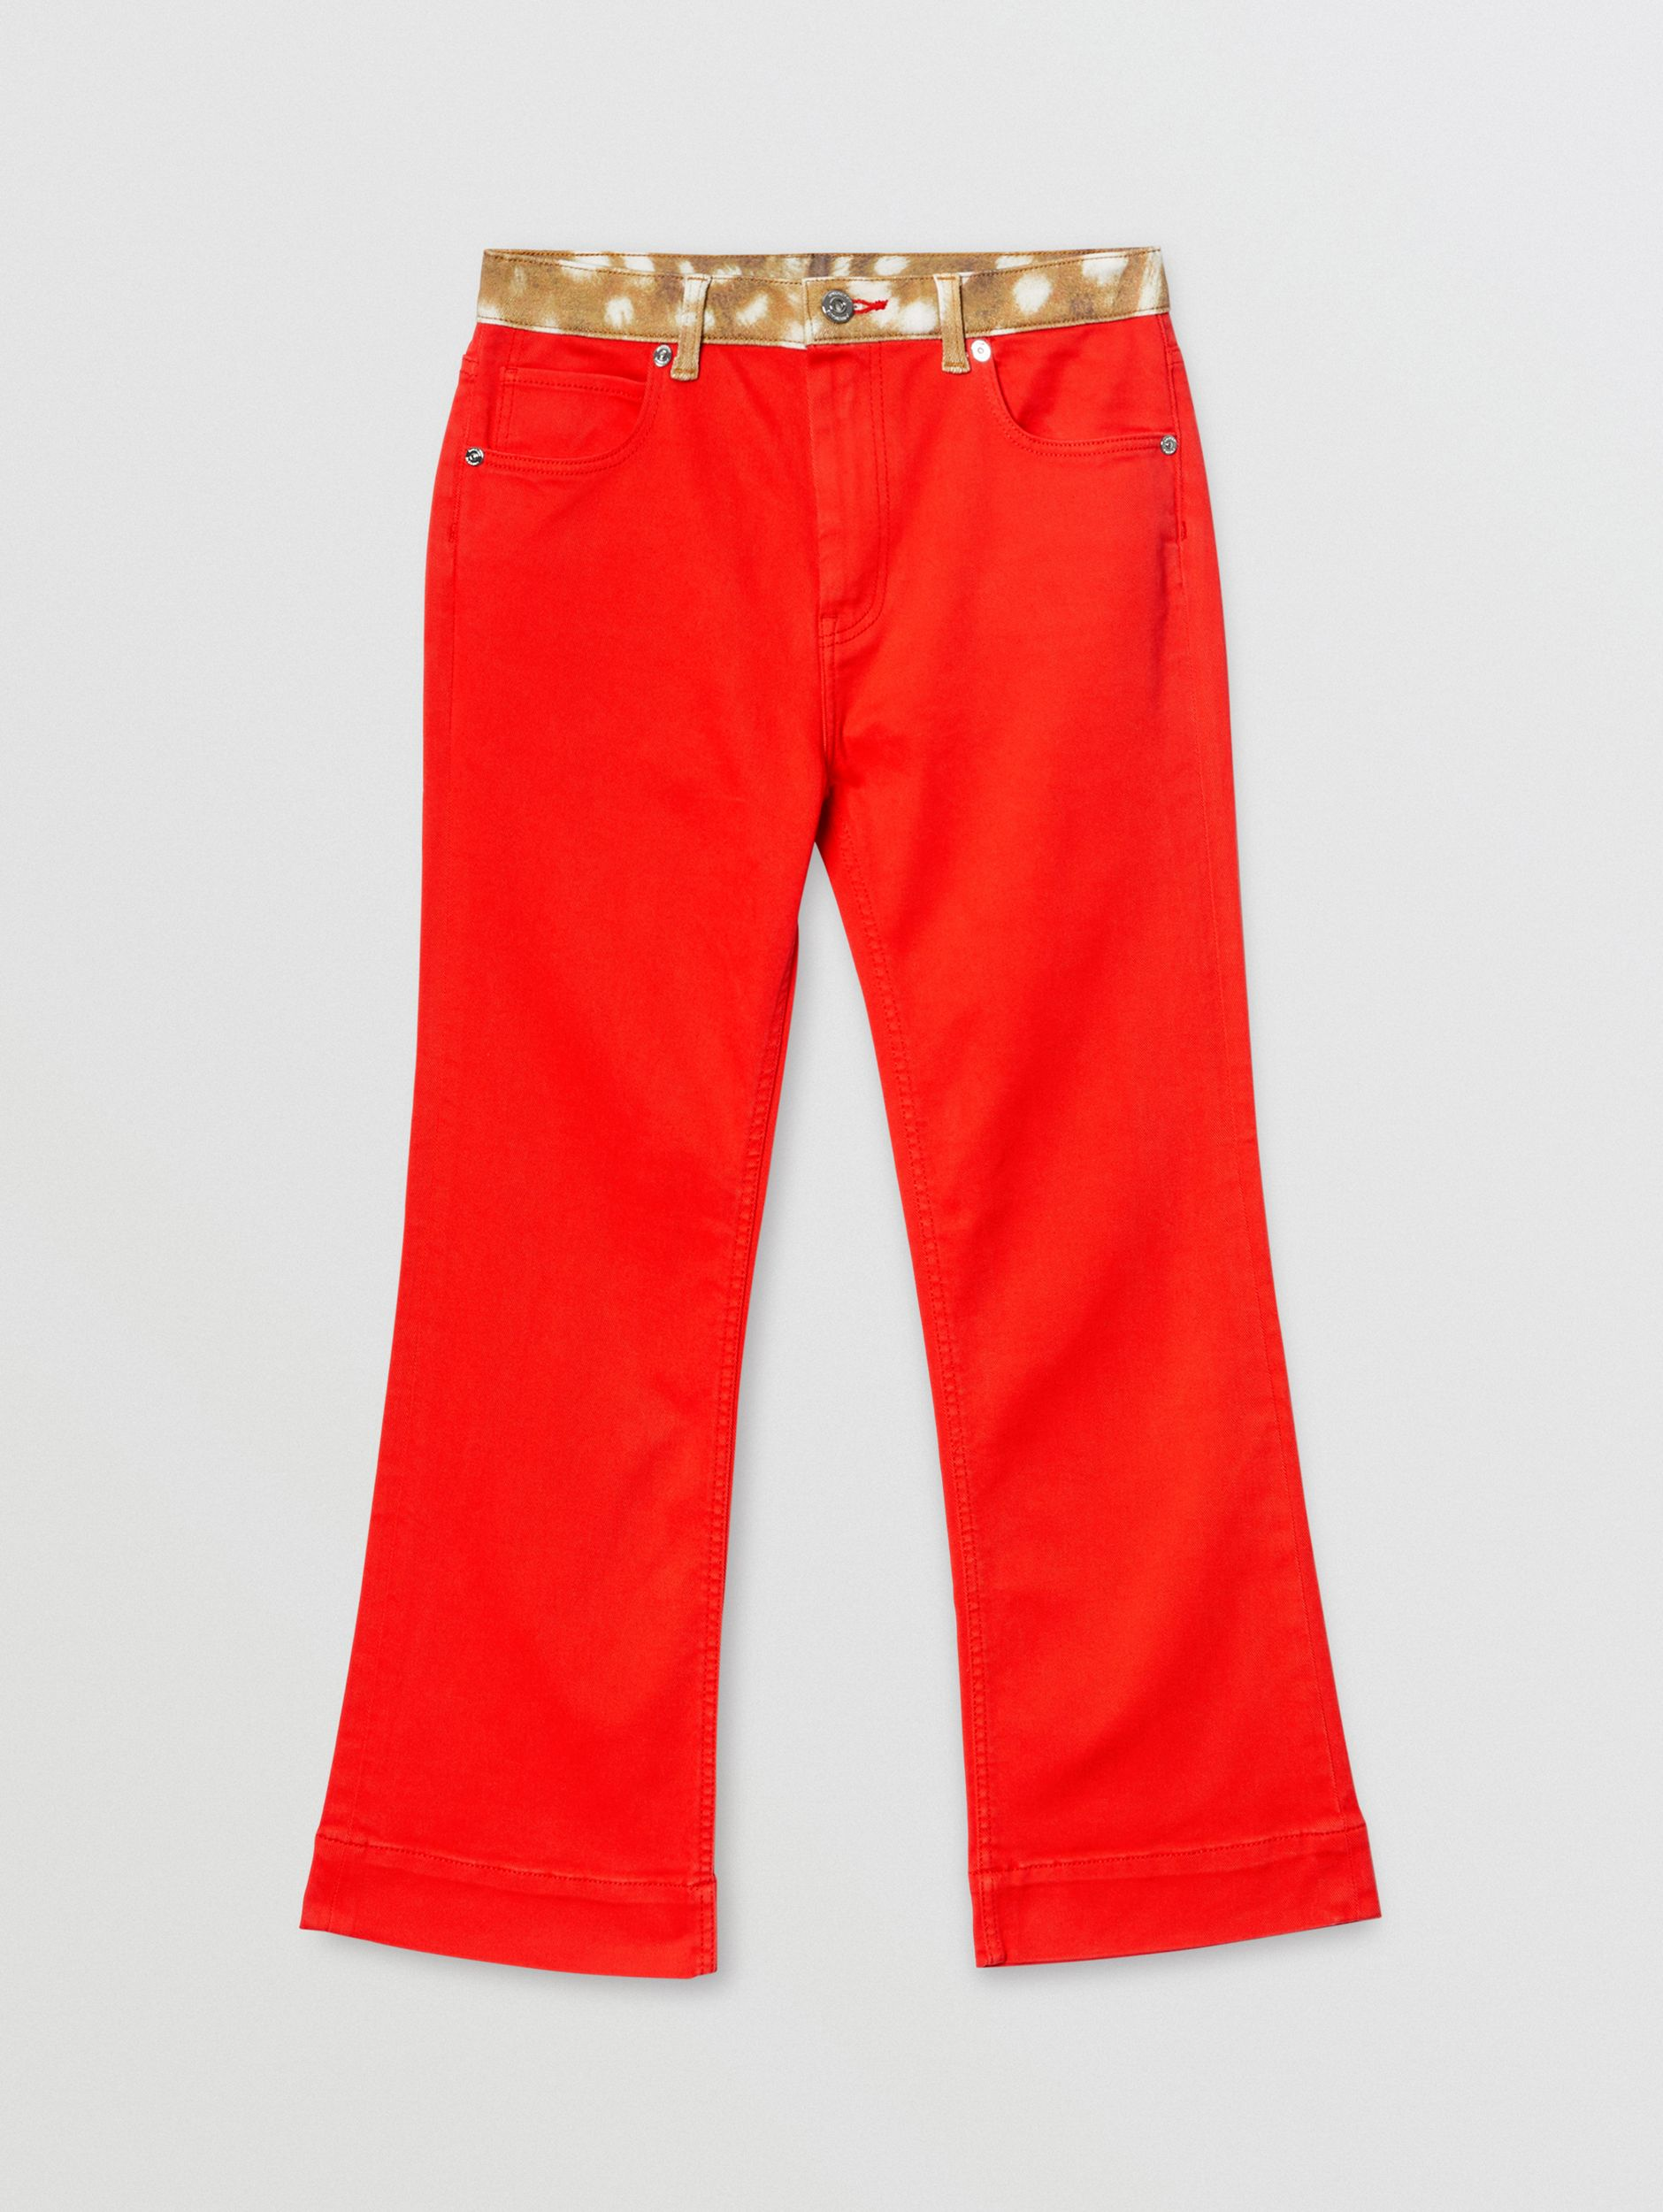 Flared Fit Deer Print Trim Japanese Denim Jeans in Bright Red | Burberry - 1